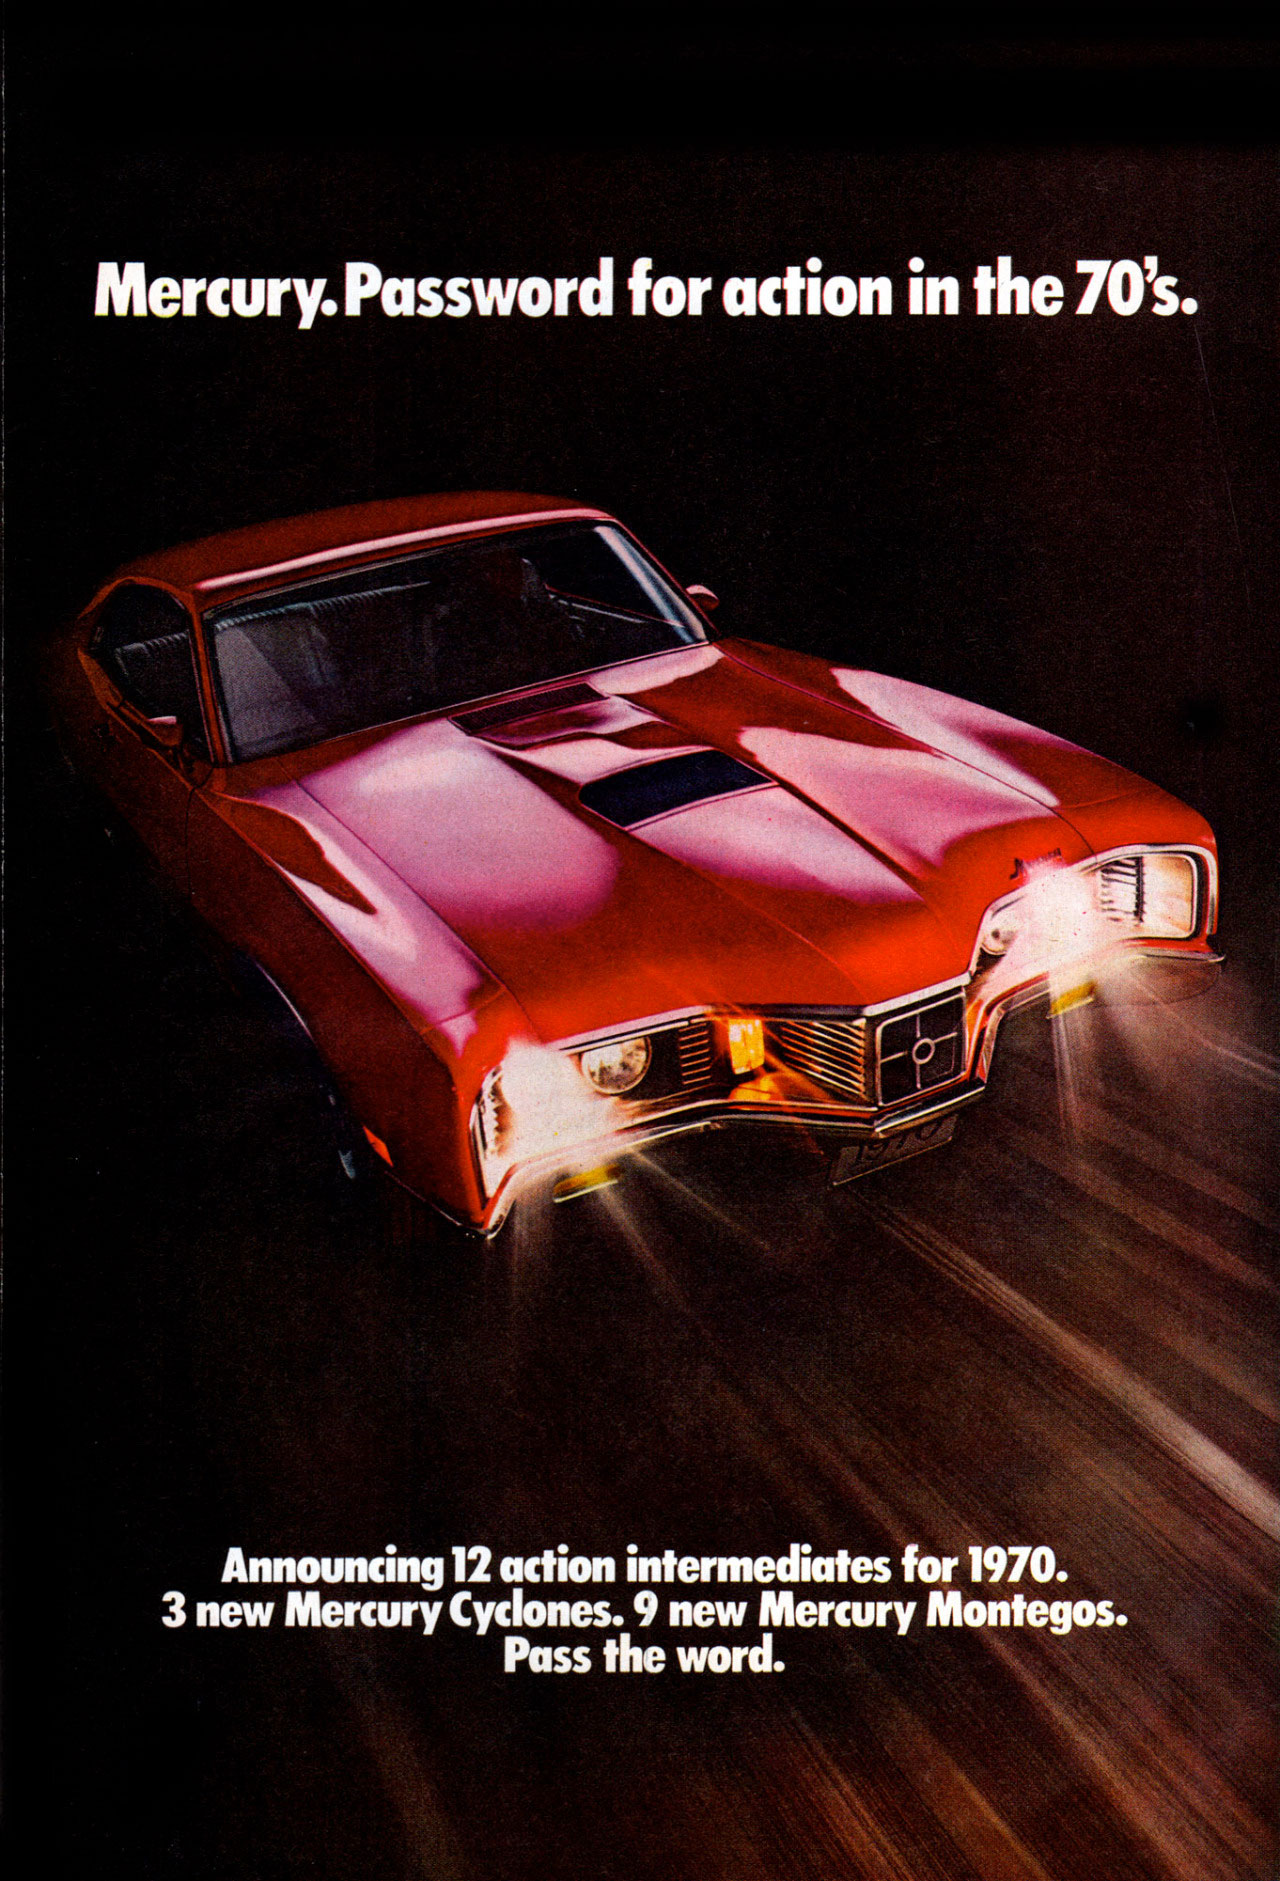 Mercury. Password for action in the 70's. Announcing 12 action intermediates for 1970. 3 new Mercury Cyclones. 9 new Mercury Montegos. Pass the word.